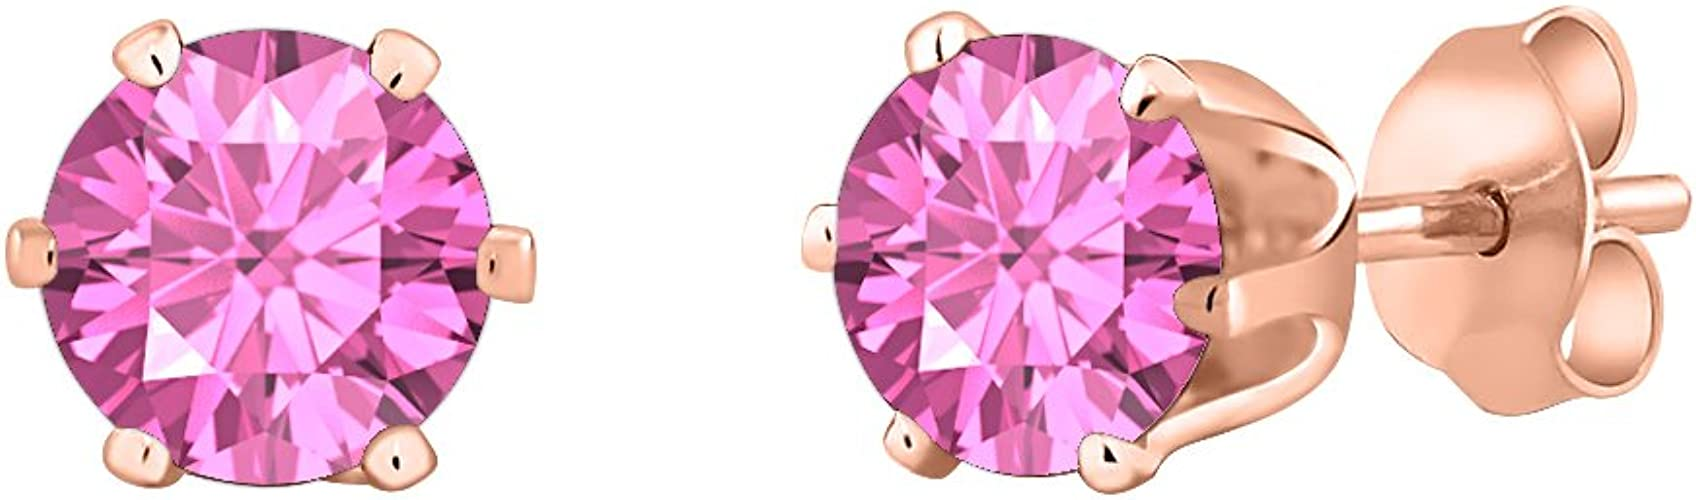 tusakha Fancy Party Wear Princess Cut Yellow Sapphire Solitaire Stud Earrings 14K Rose Gold Over .925 Sterling Silver For Womens /& Girls 3MM TO 10MM